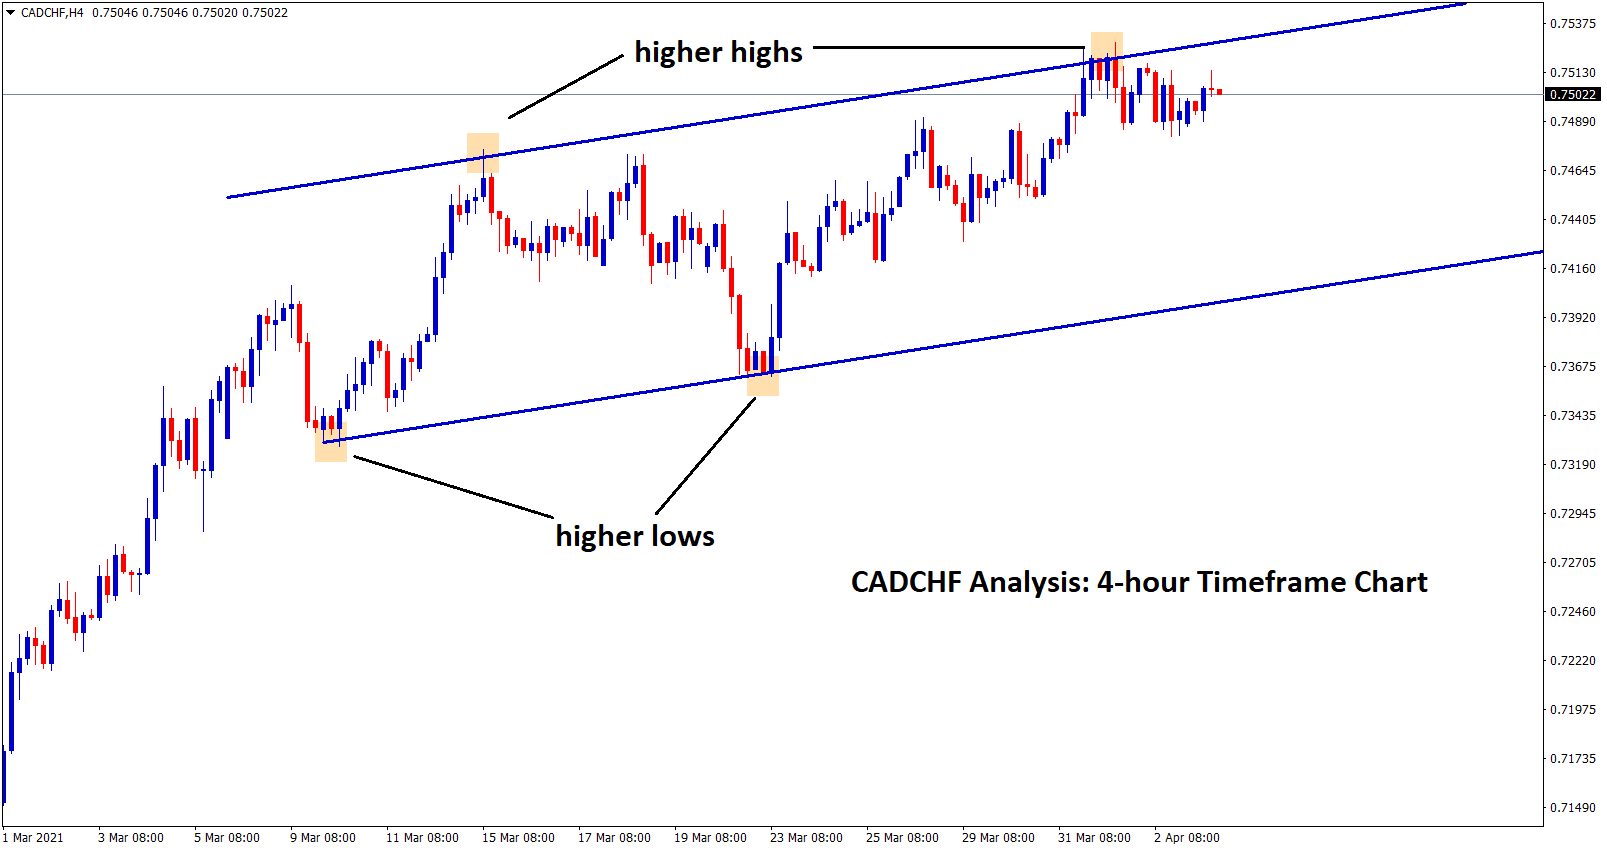 cadchf correction expected in 4hr chart